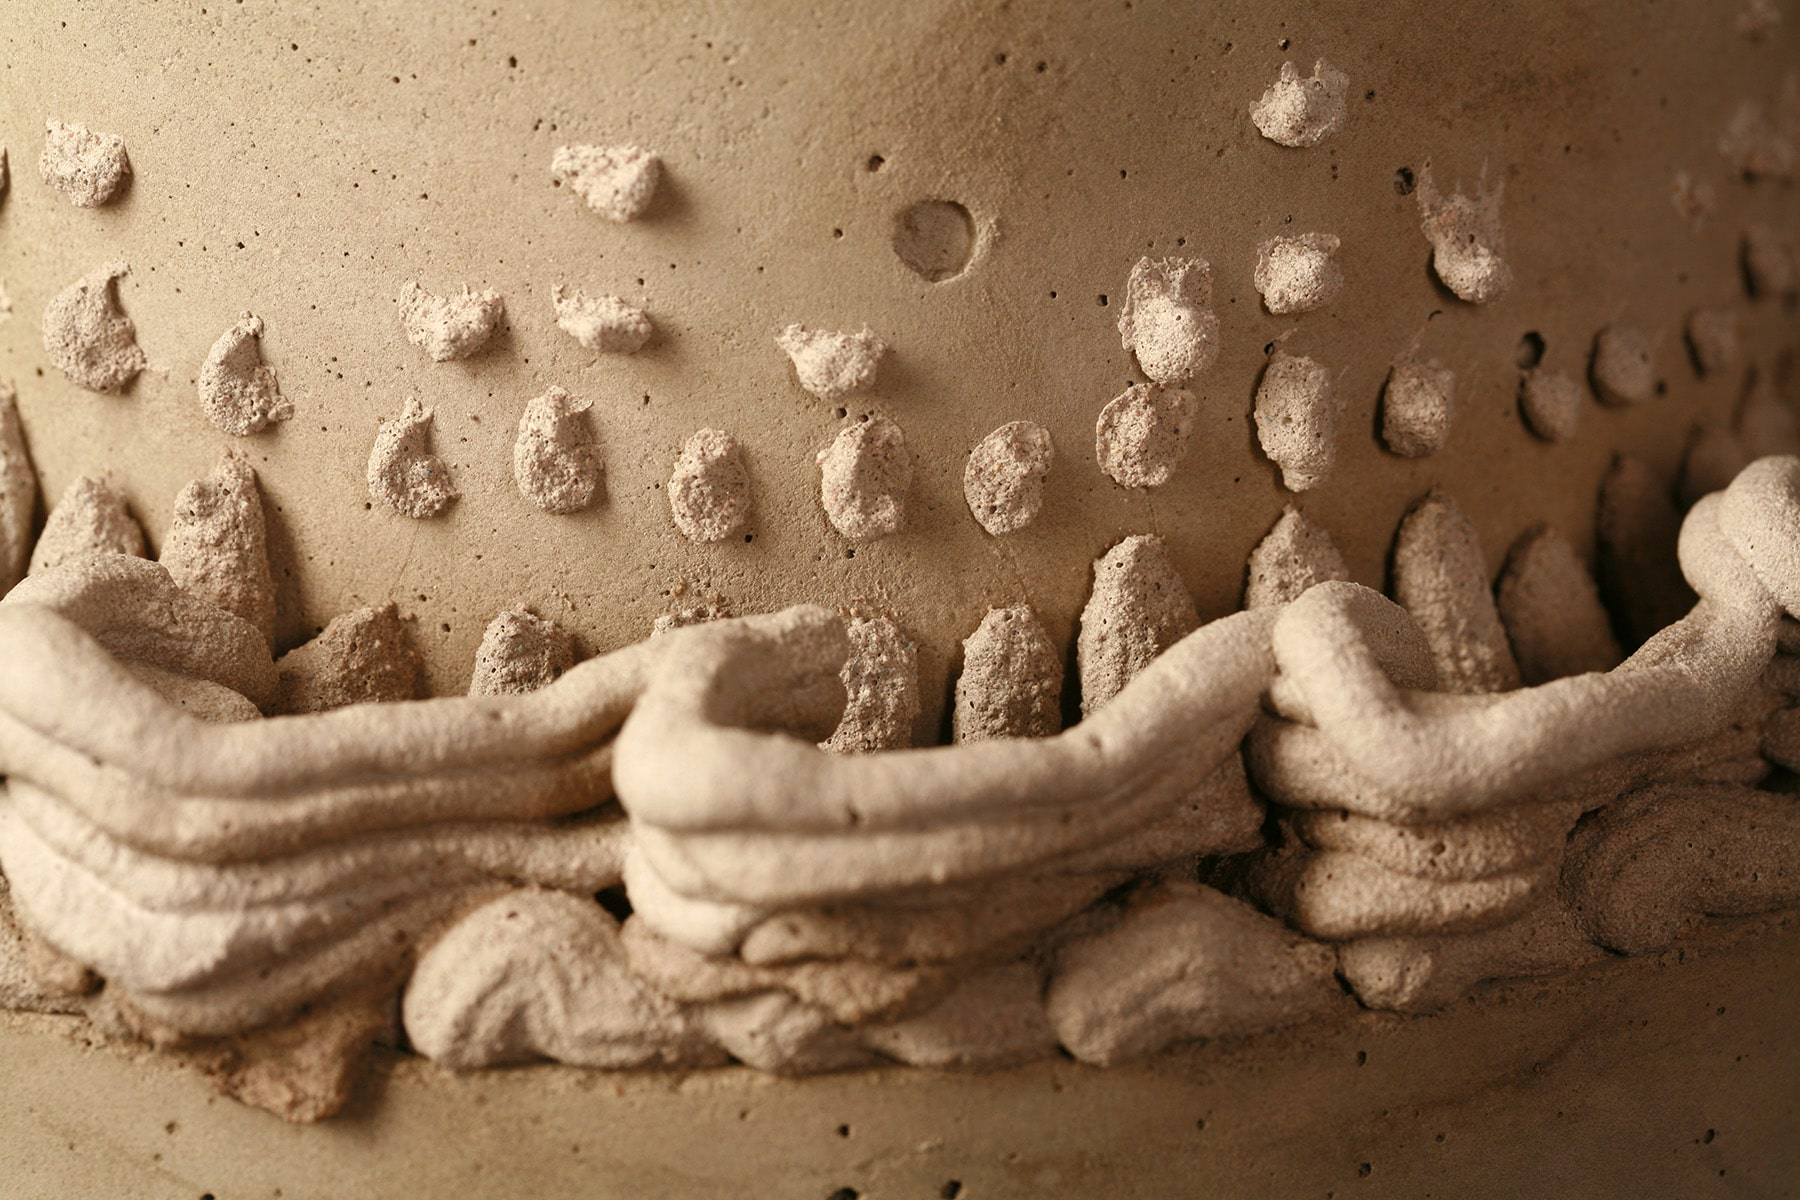 A close up view of Lambeth style cake piping, made in cement.